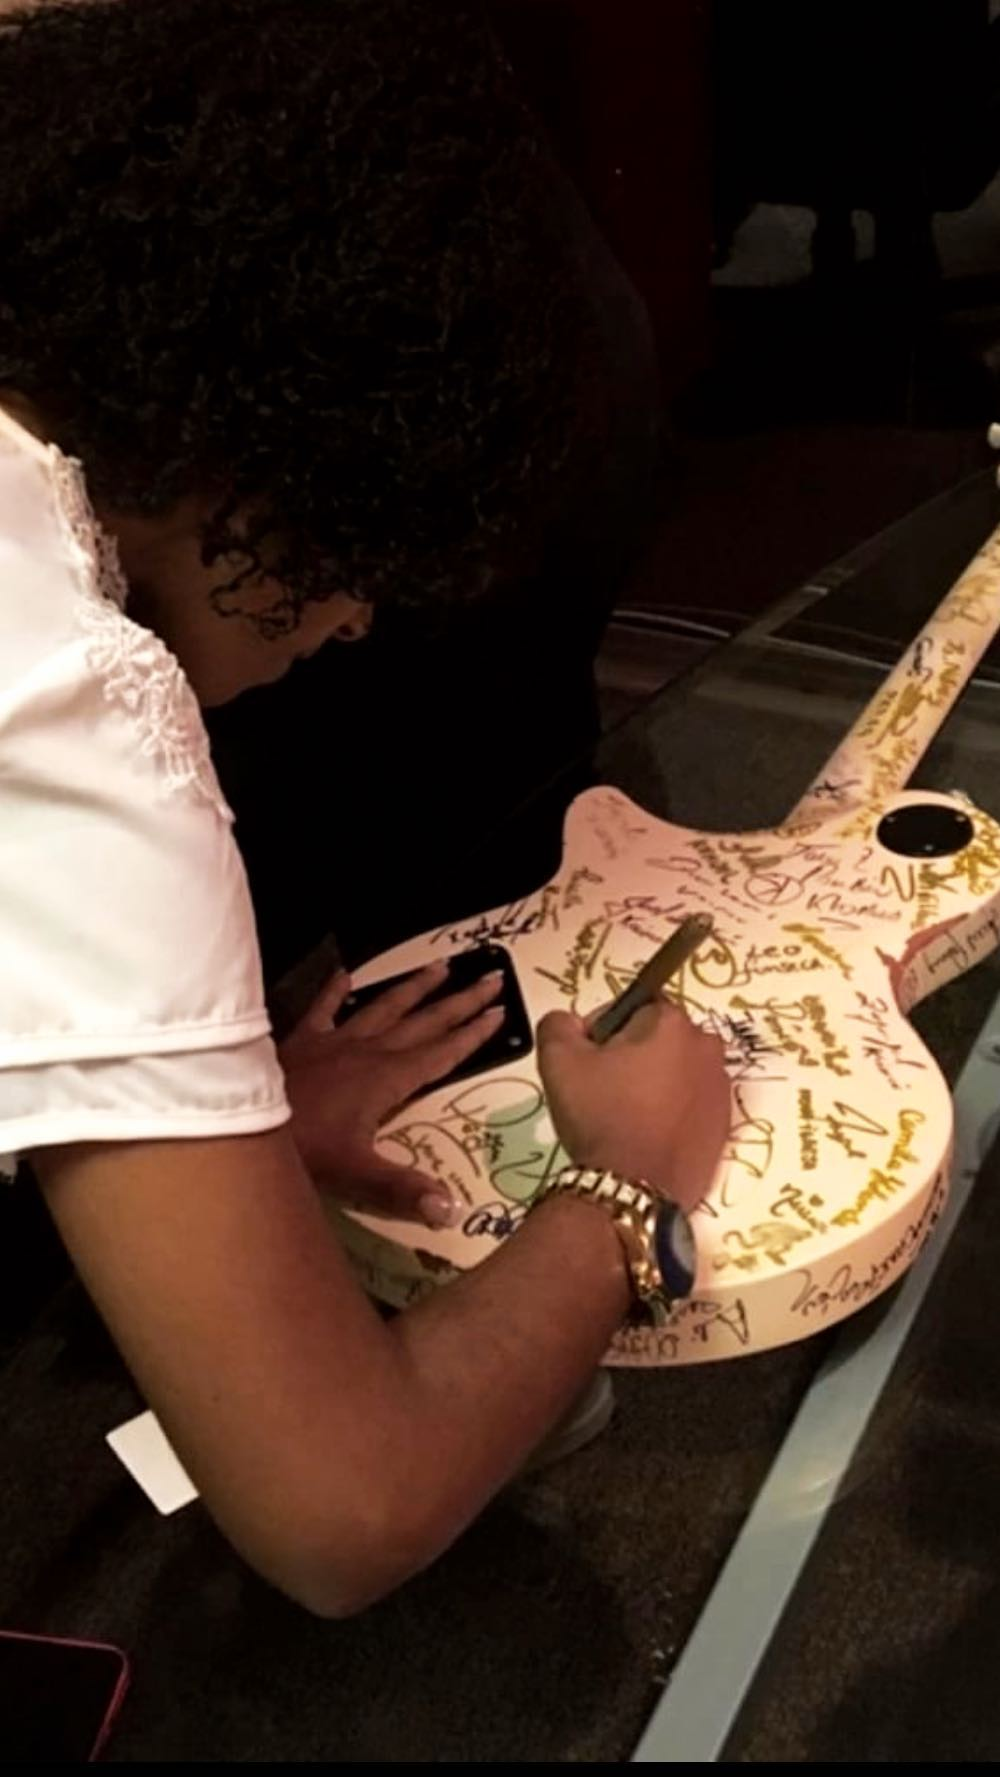 Kemilly Santos assinando a guitarra da Sony